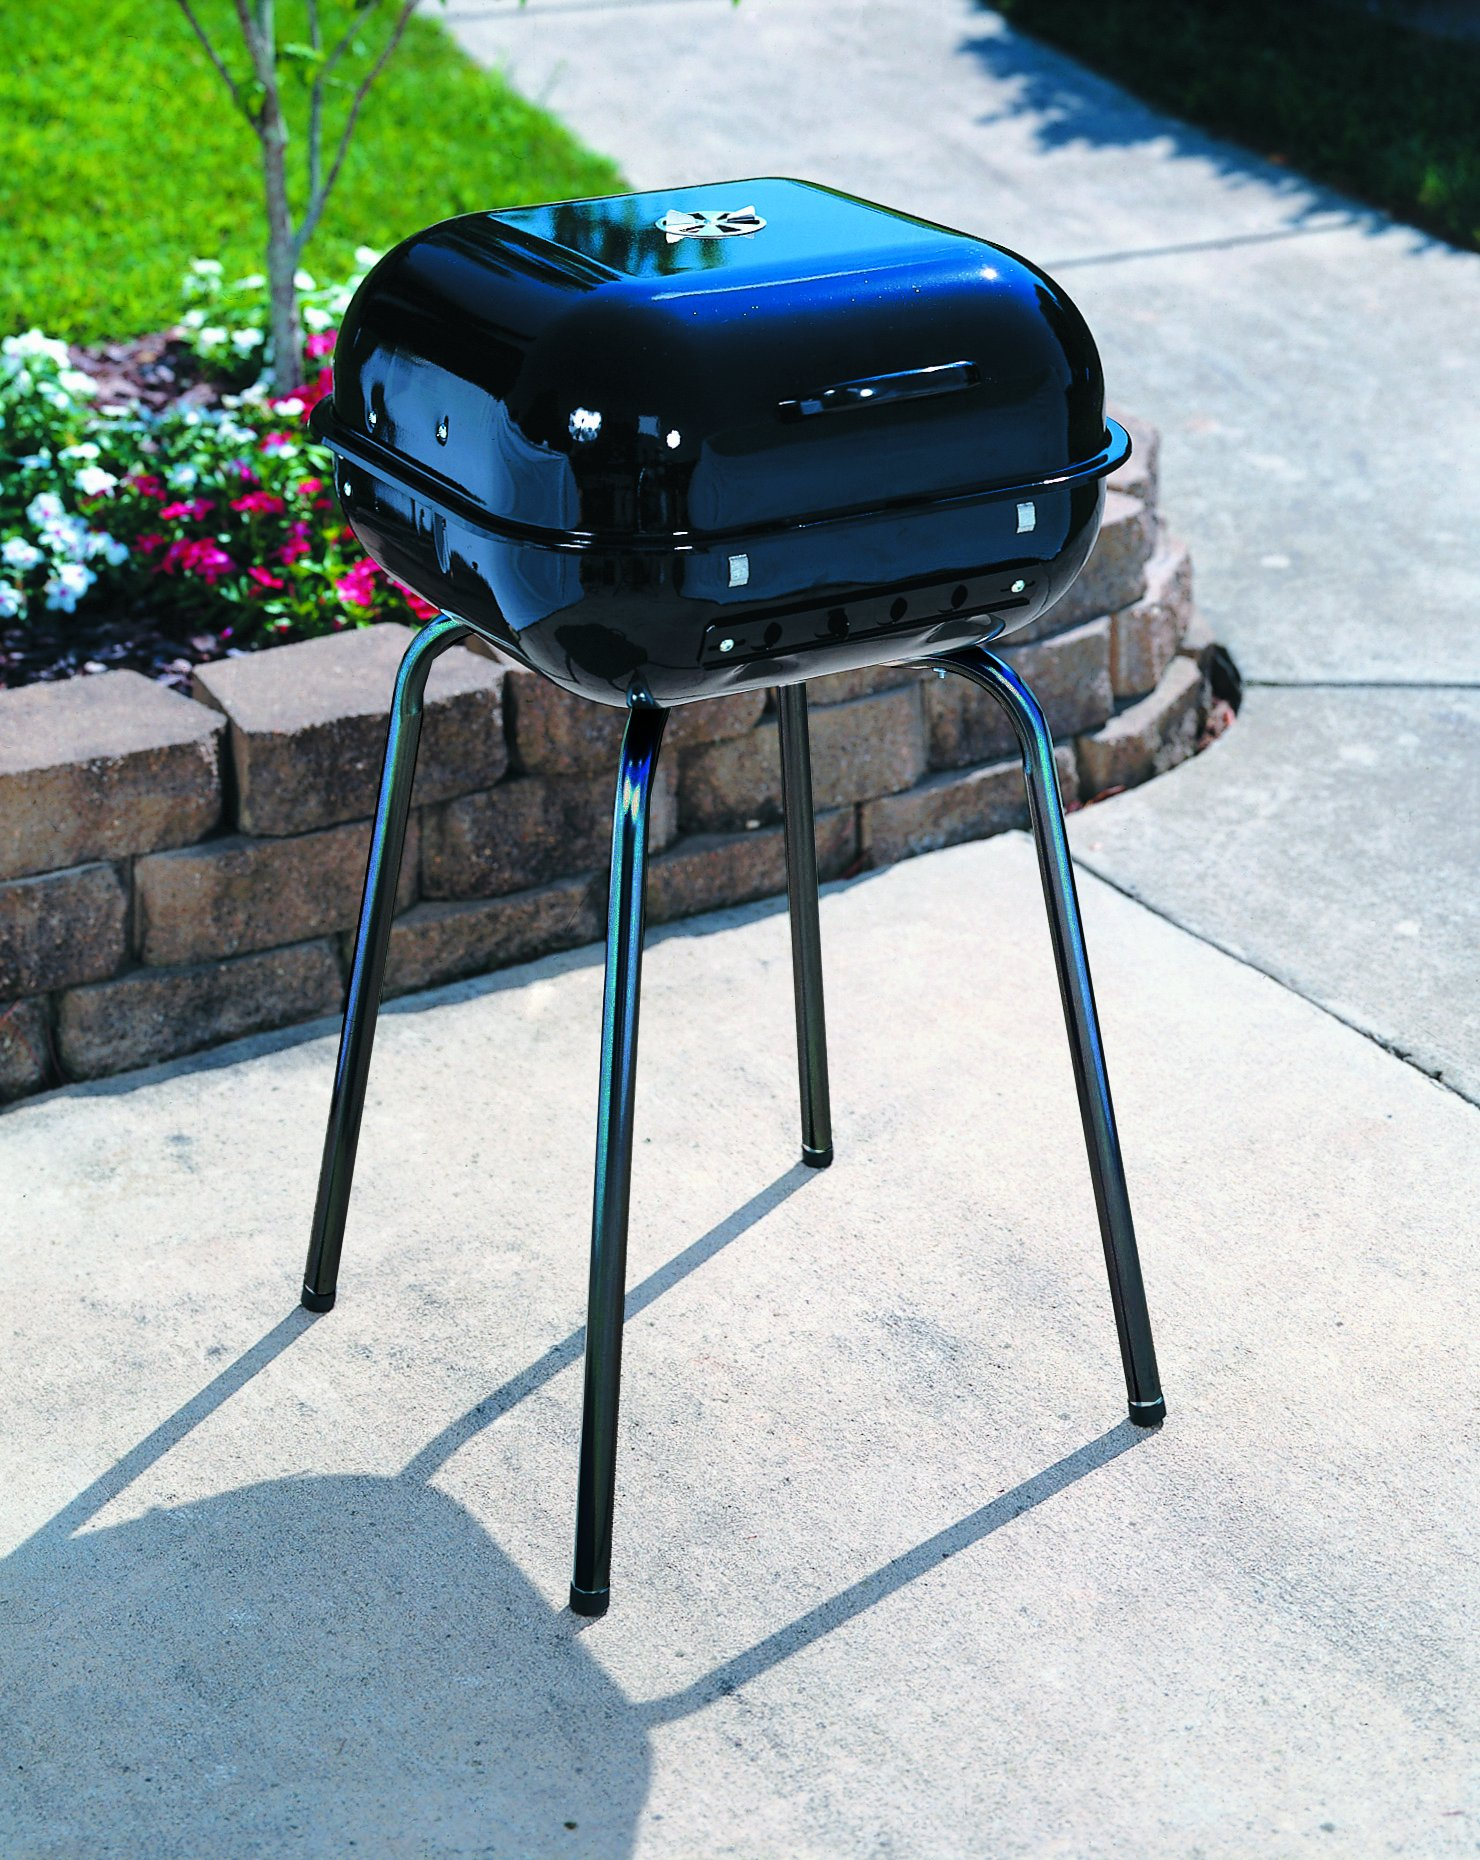 Americana the Sizzler-Charcoal Grill, Black